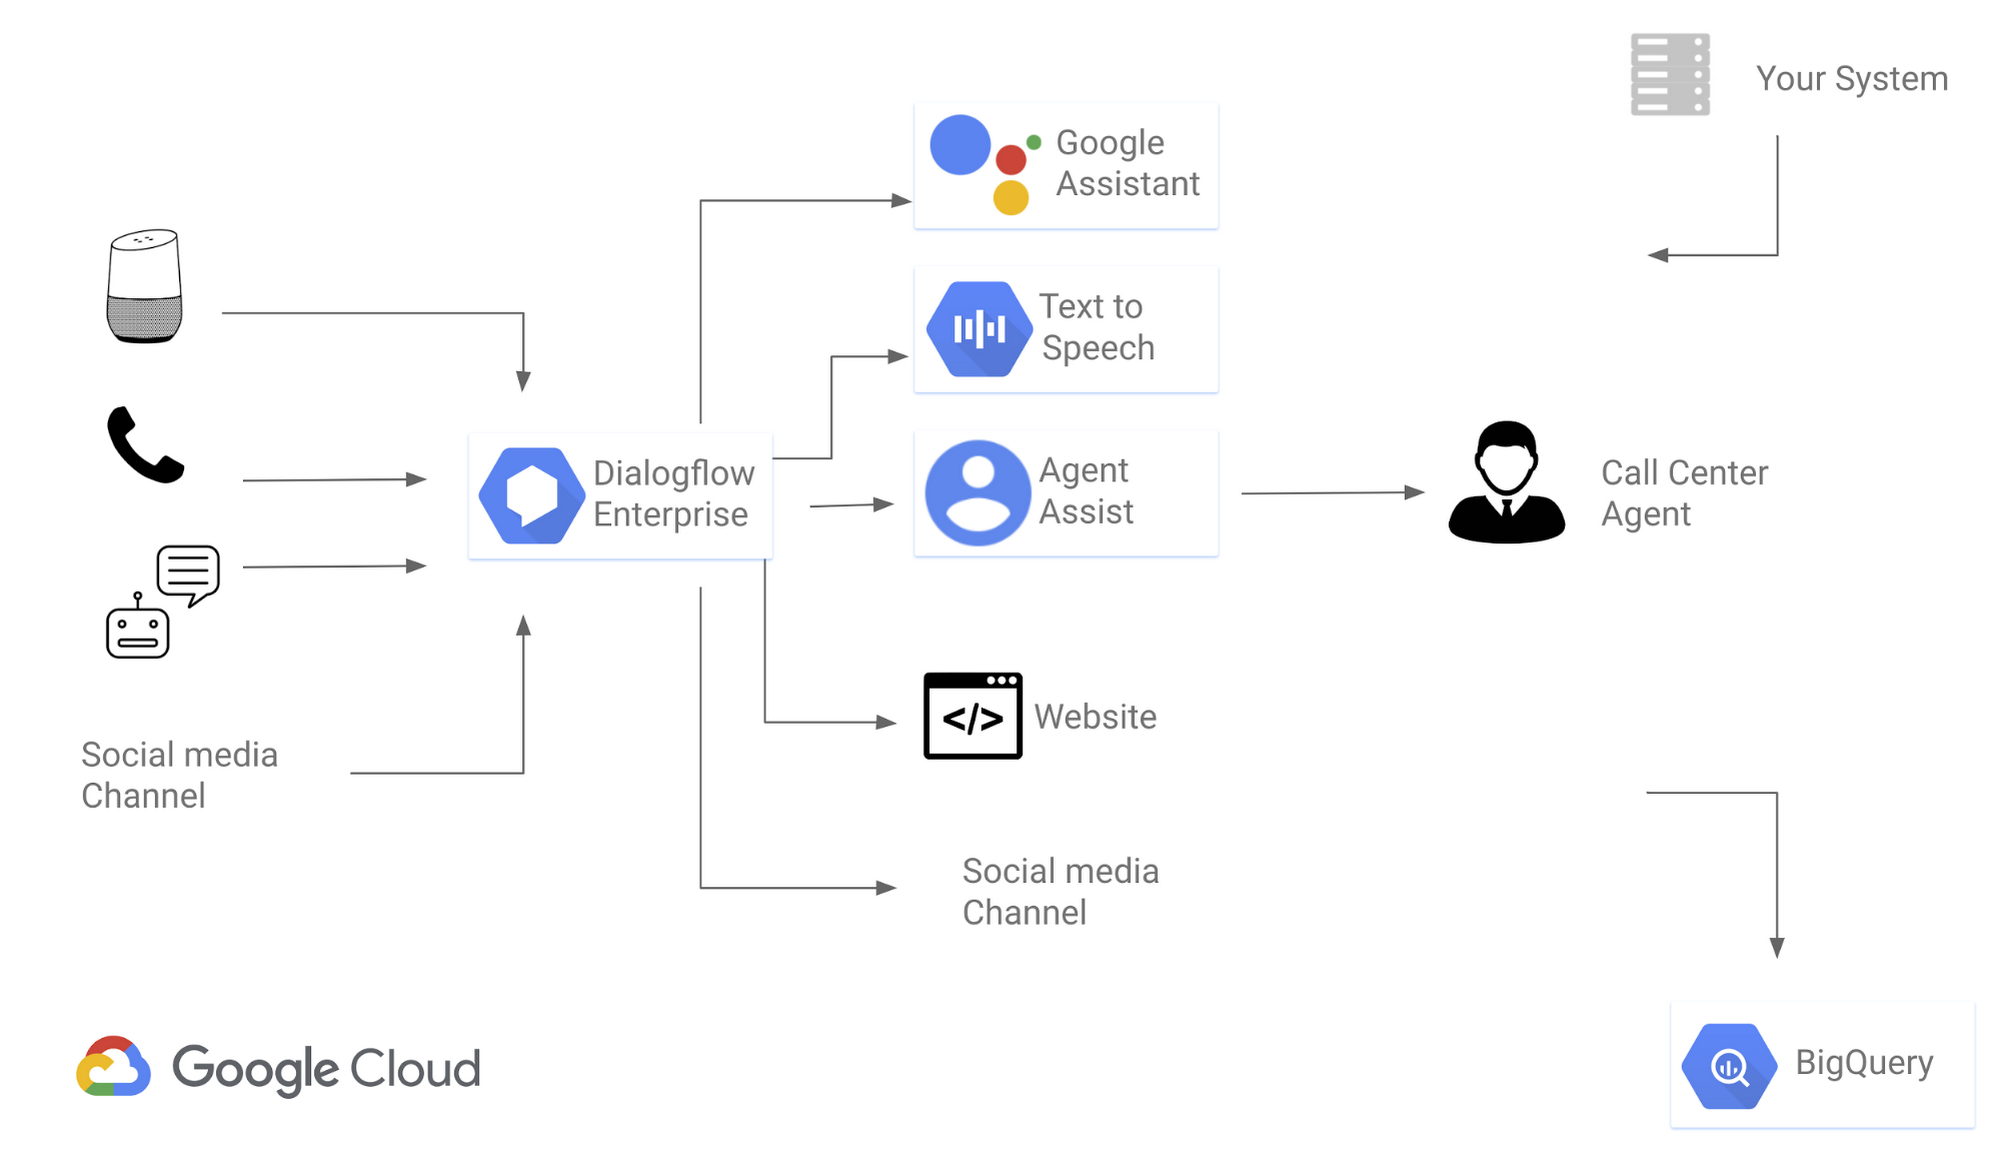 A simple blueprint for building AI-powered customer service